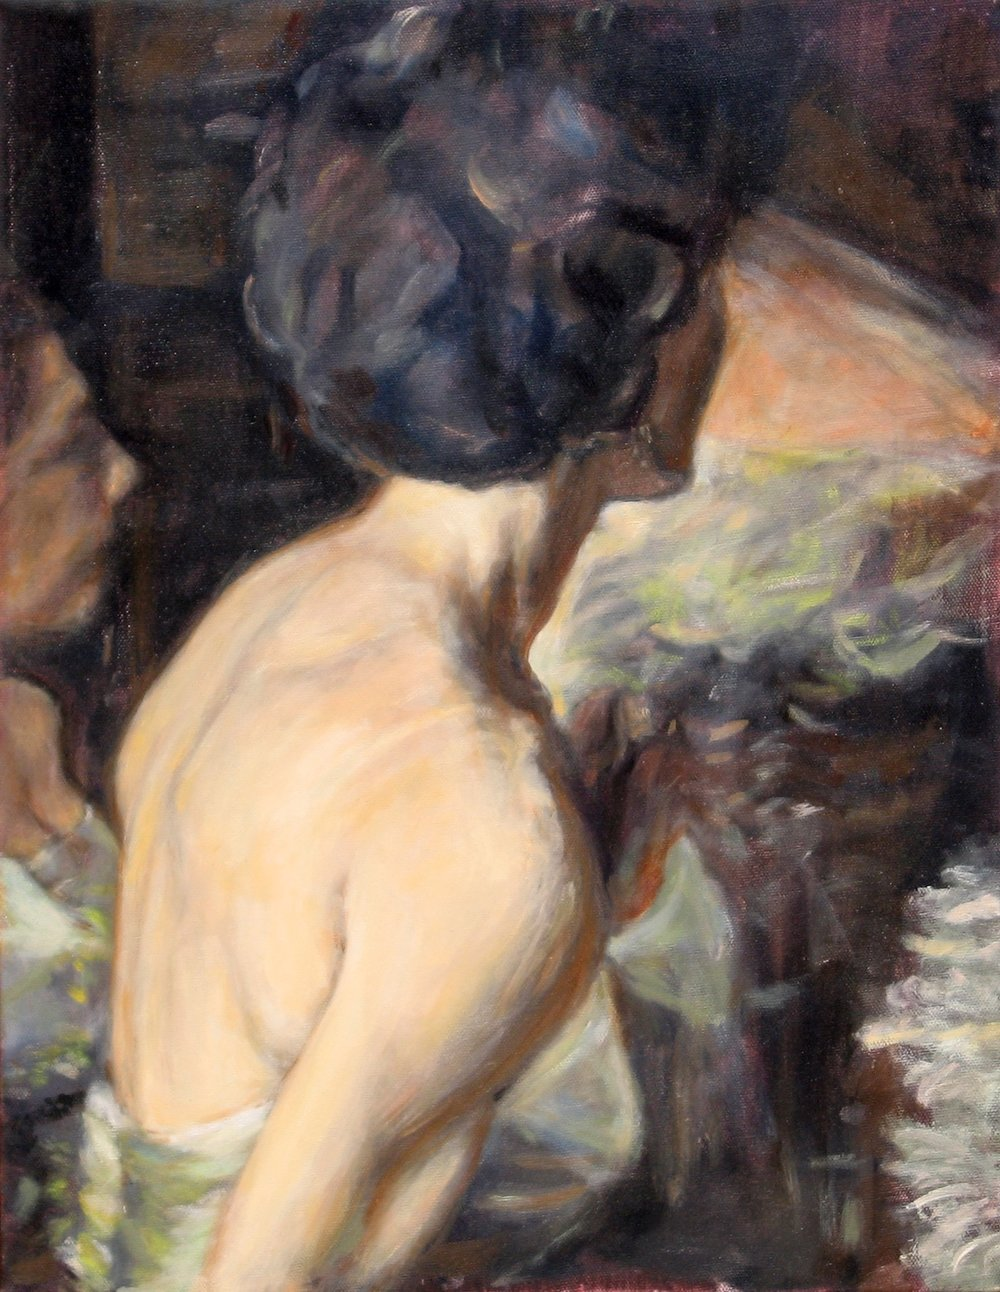 bridesmaid_oil on canvas_18x14''.jpg